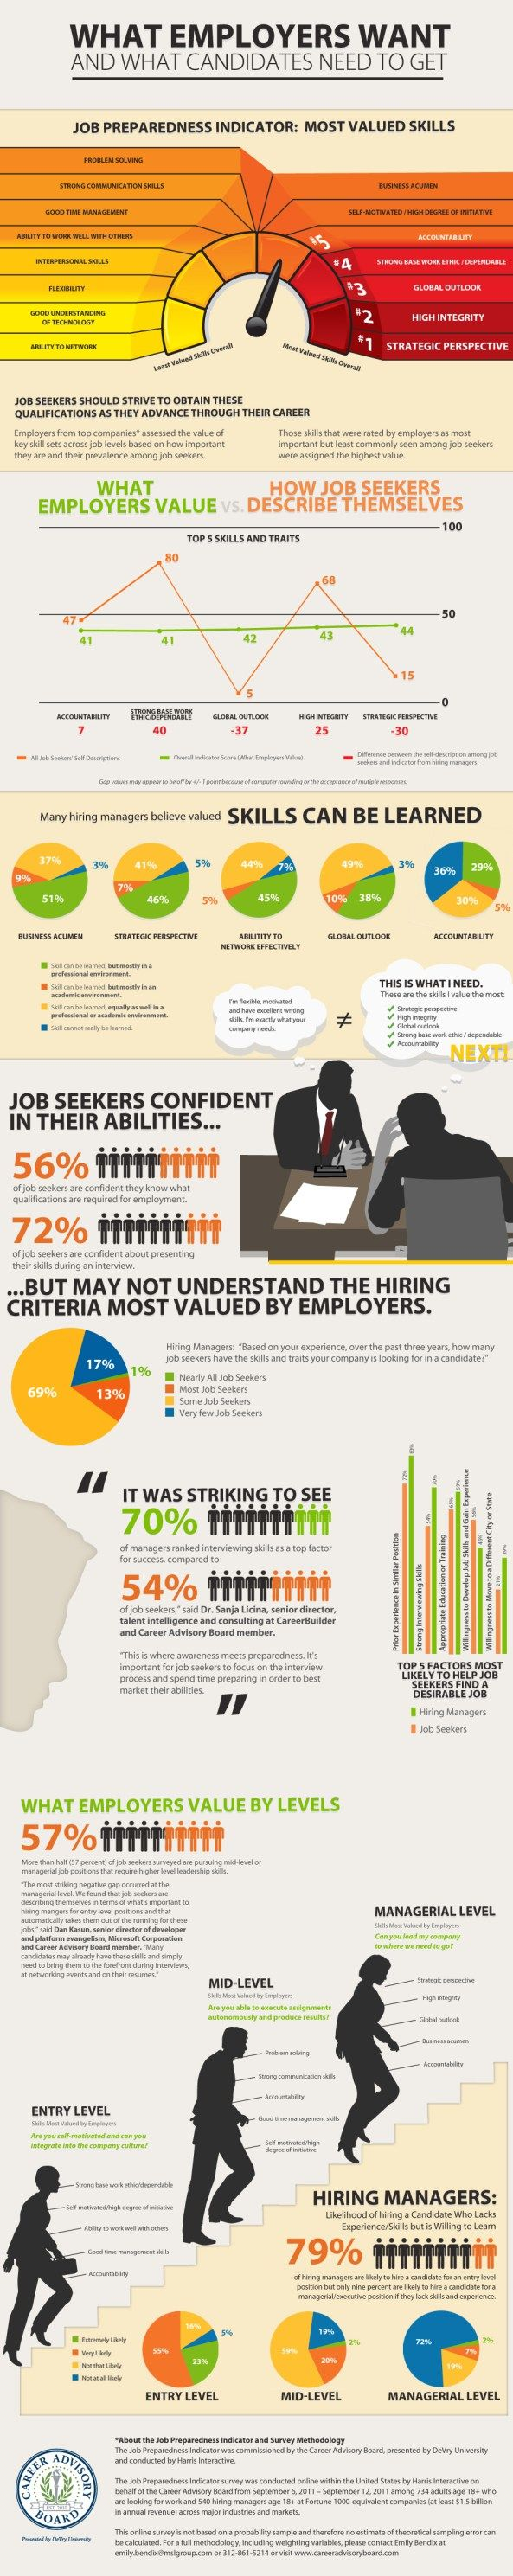 top ideas about human resources technology the talent lineup key skills employers seek and how candidates can compete